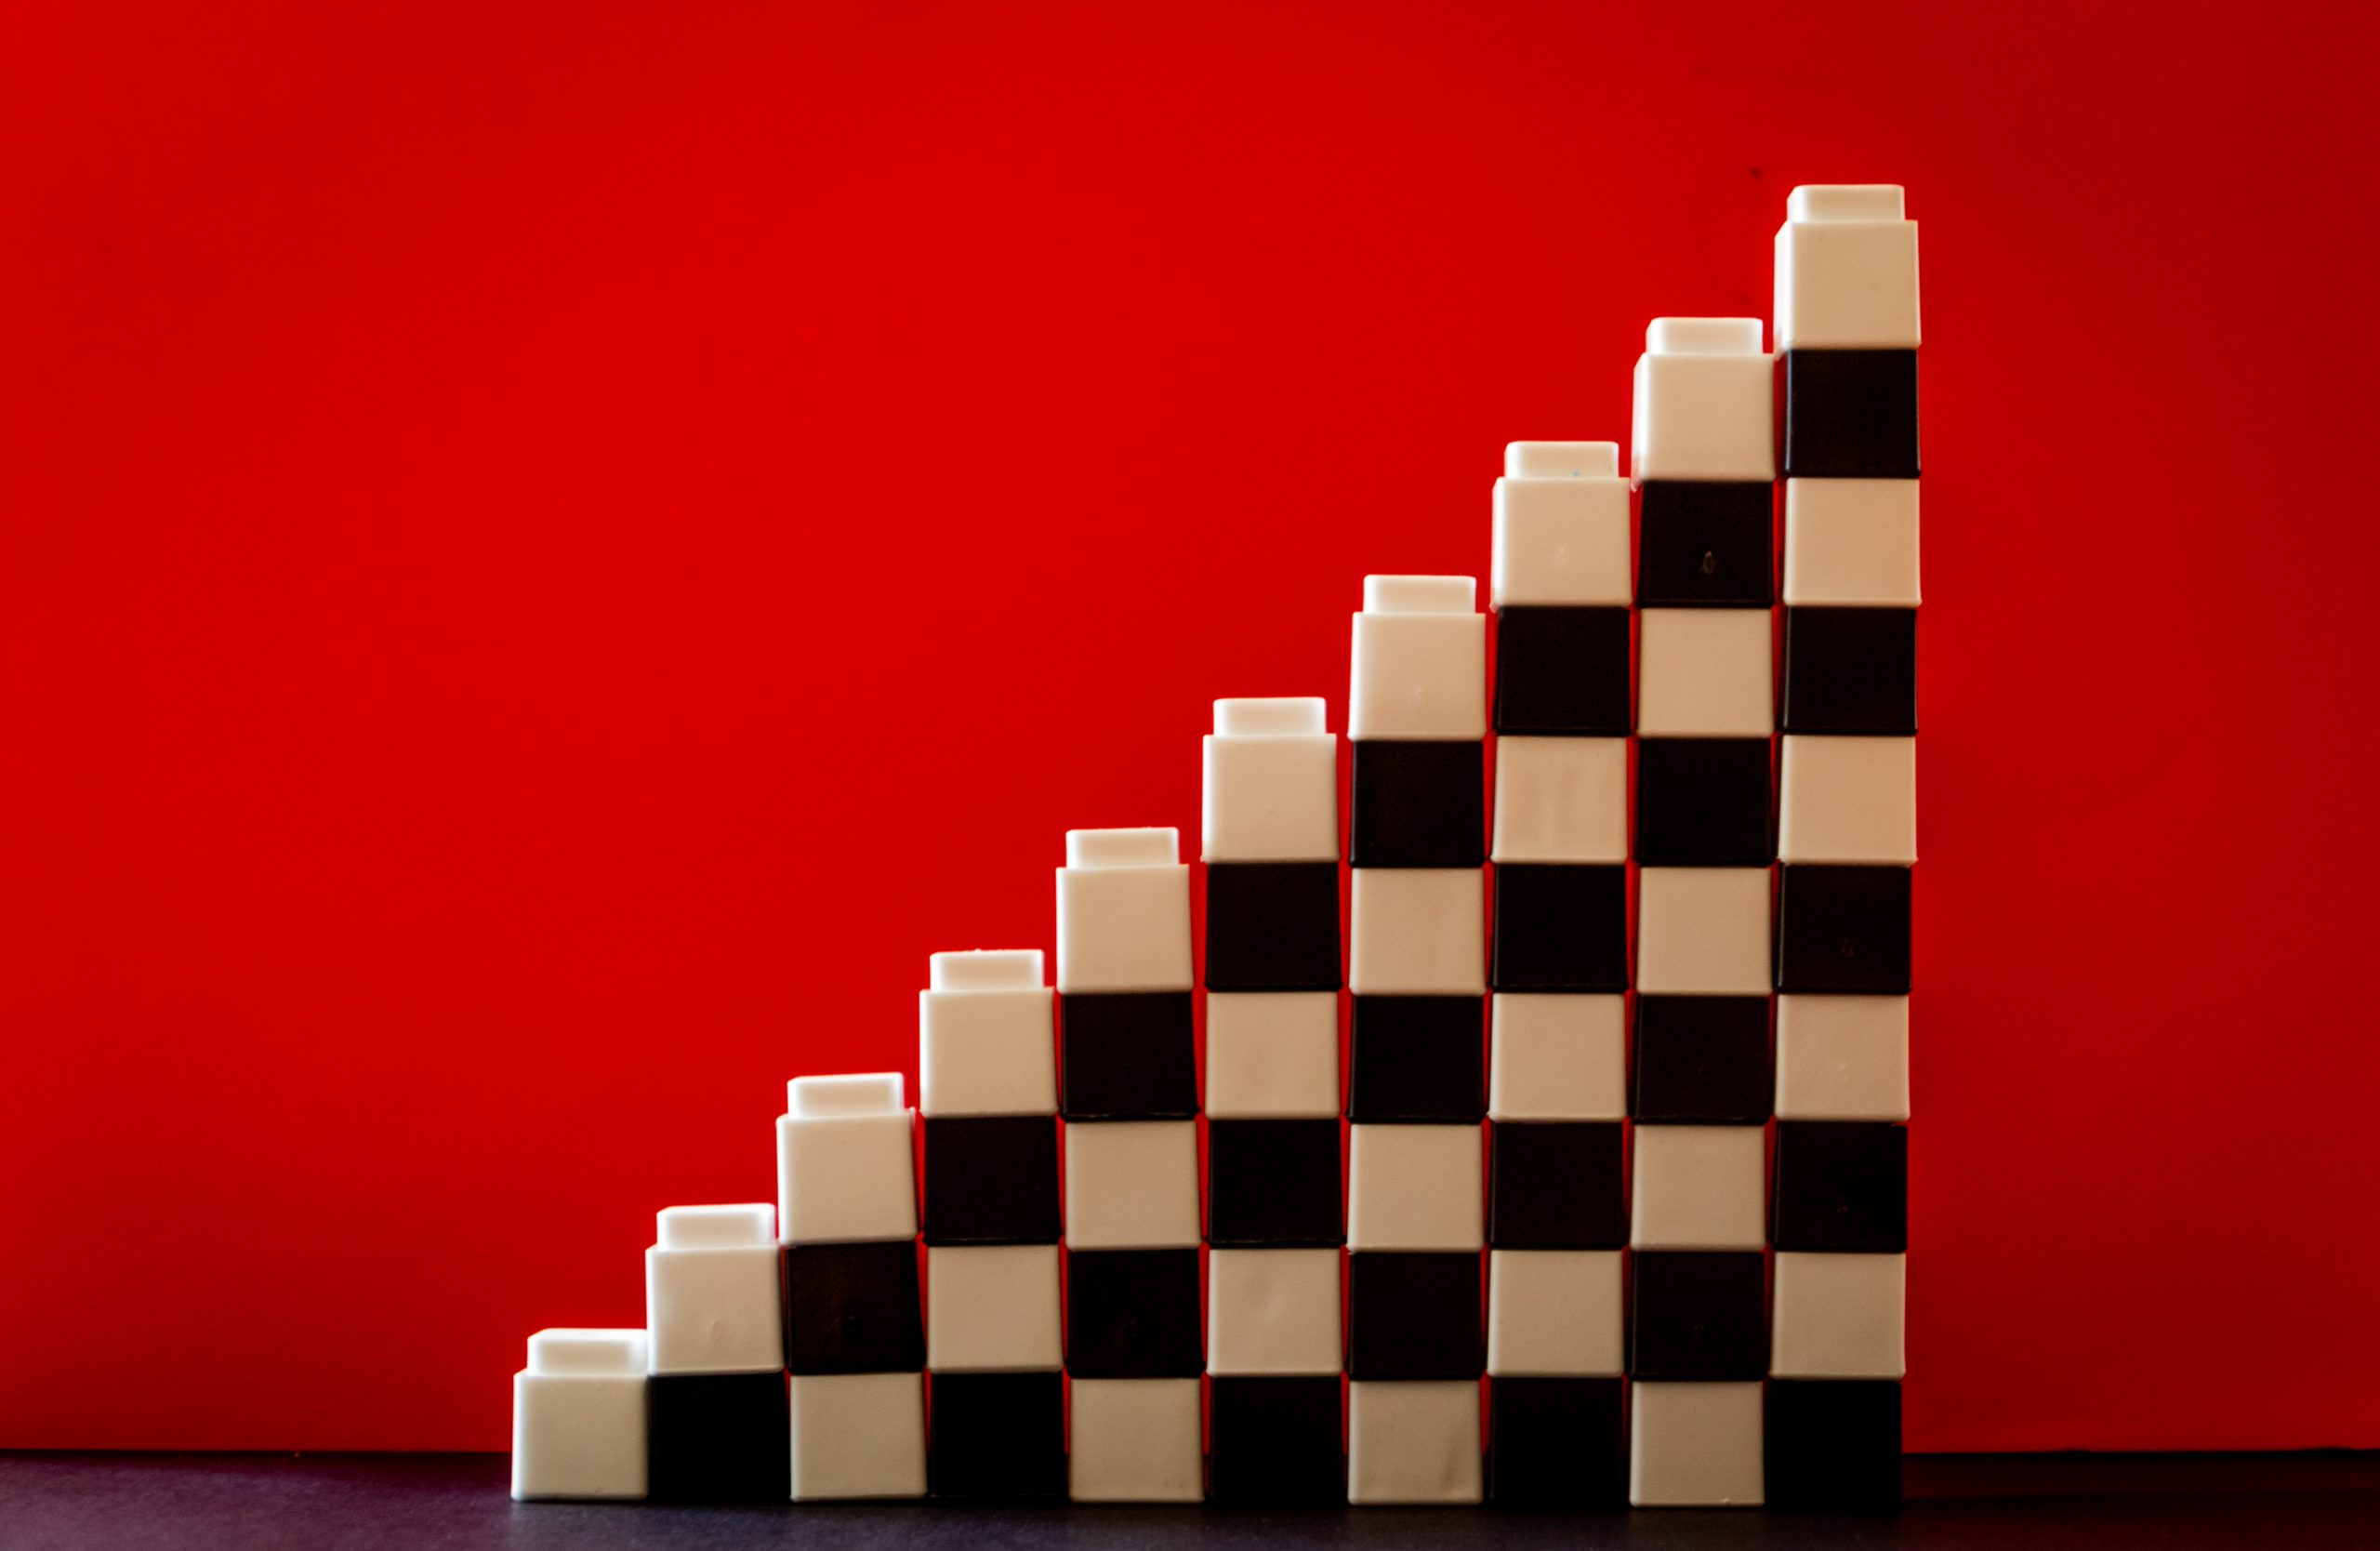 Stacked white and black blocks on a red background